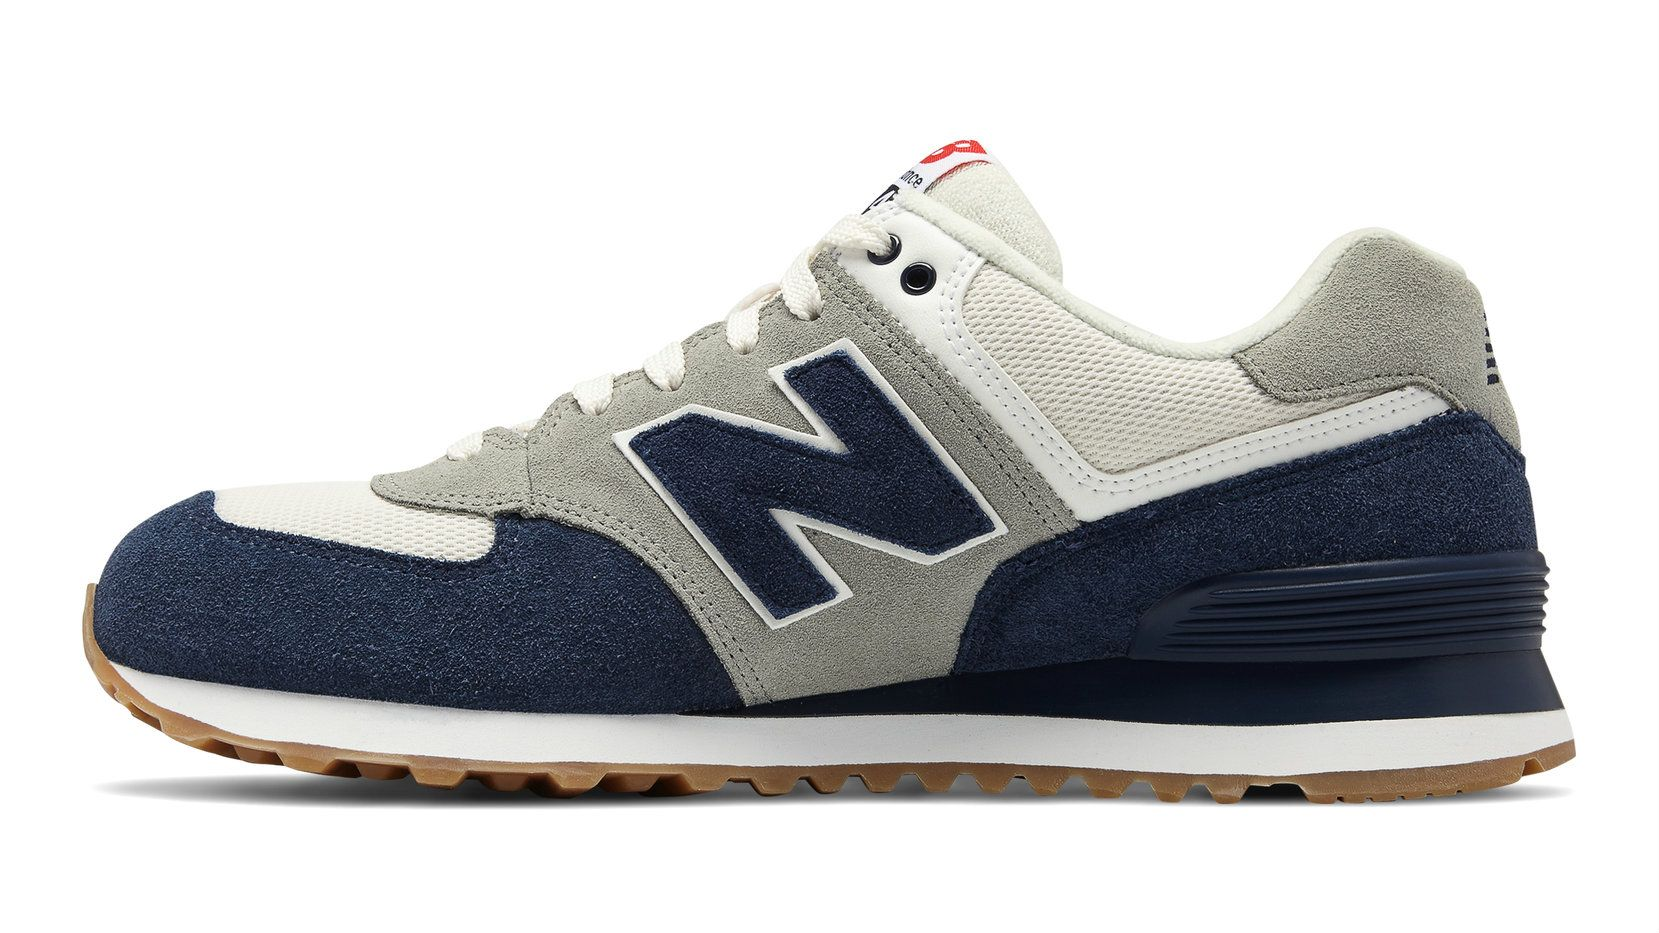 New Balance 574 Retro Sport Made in the USA